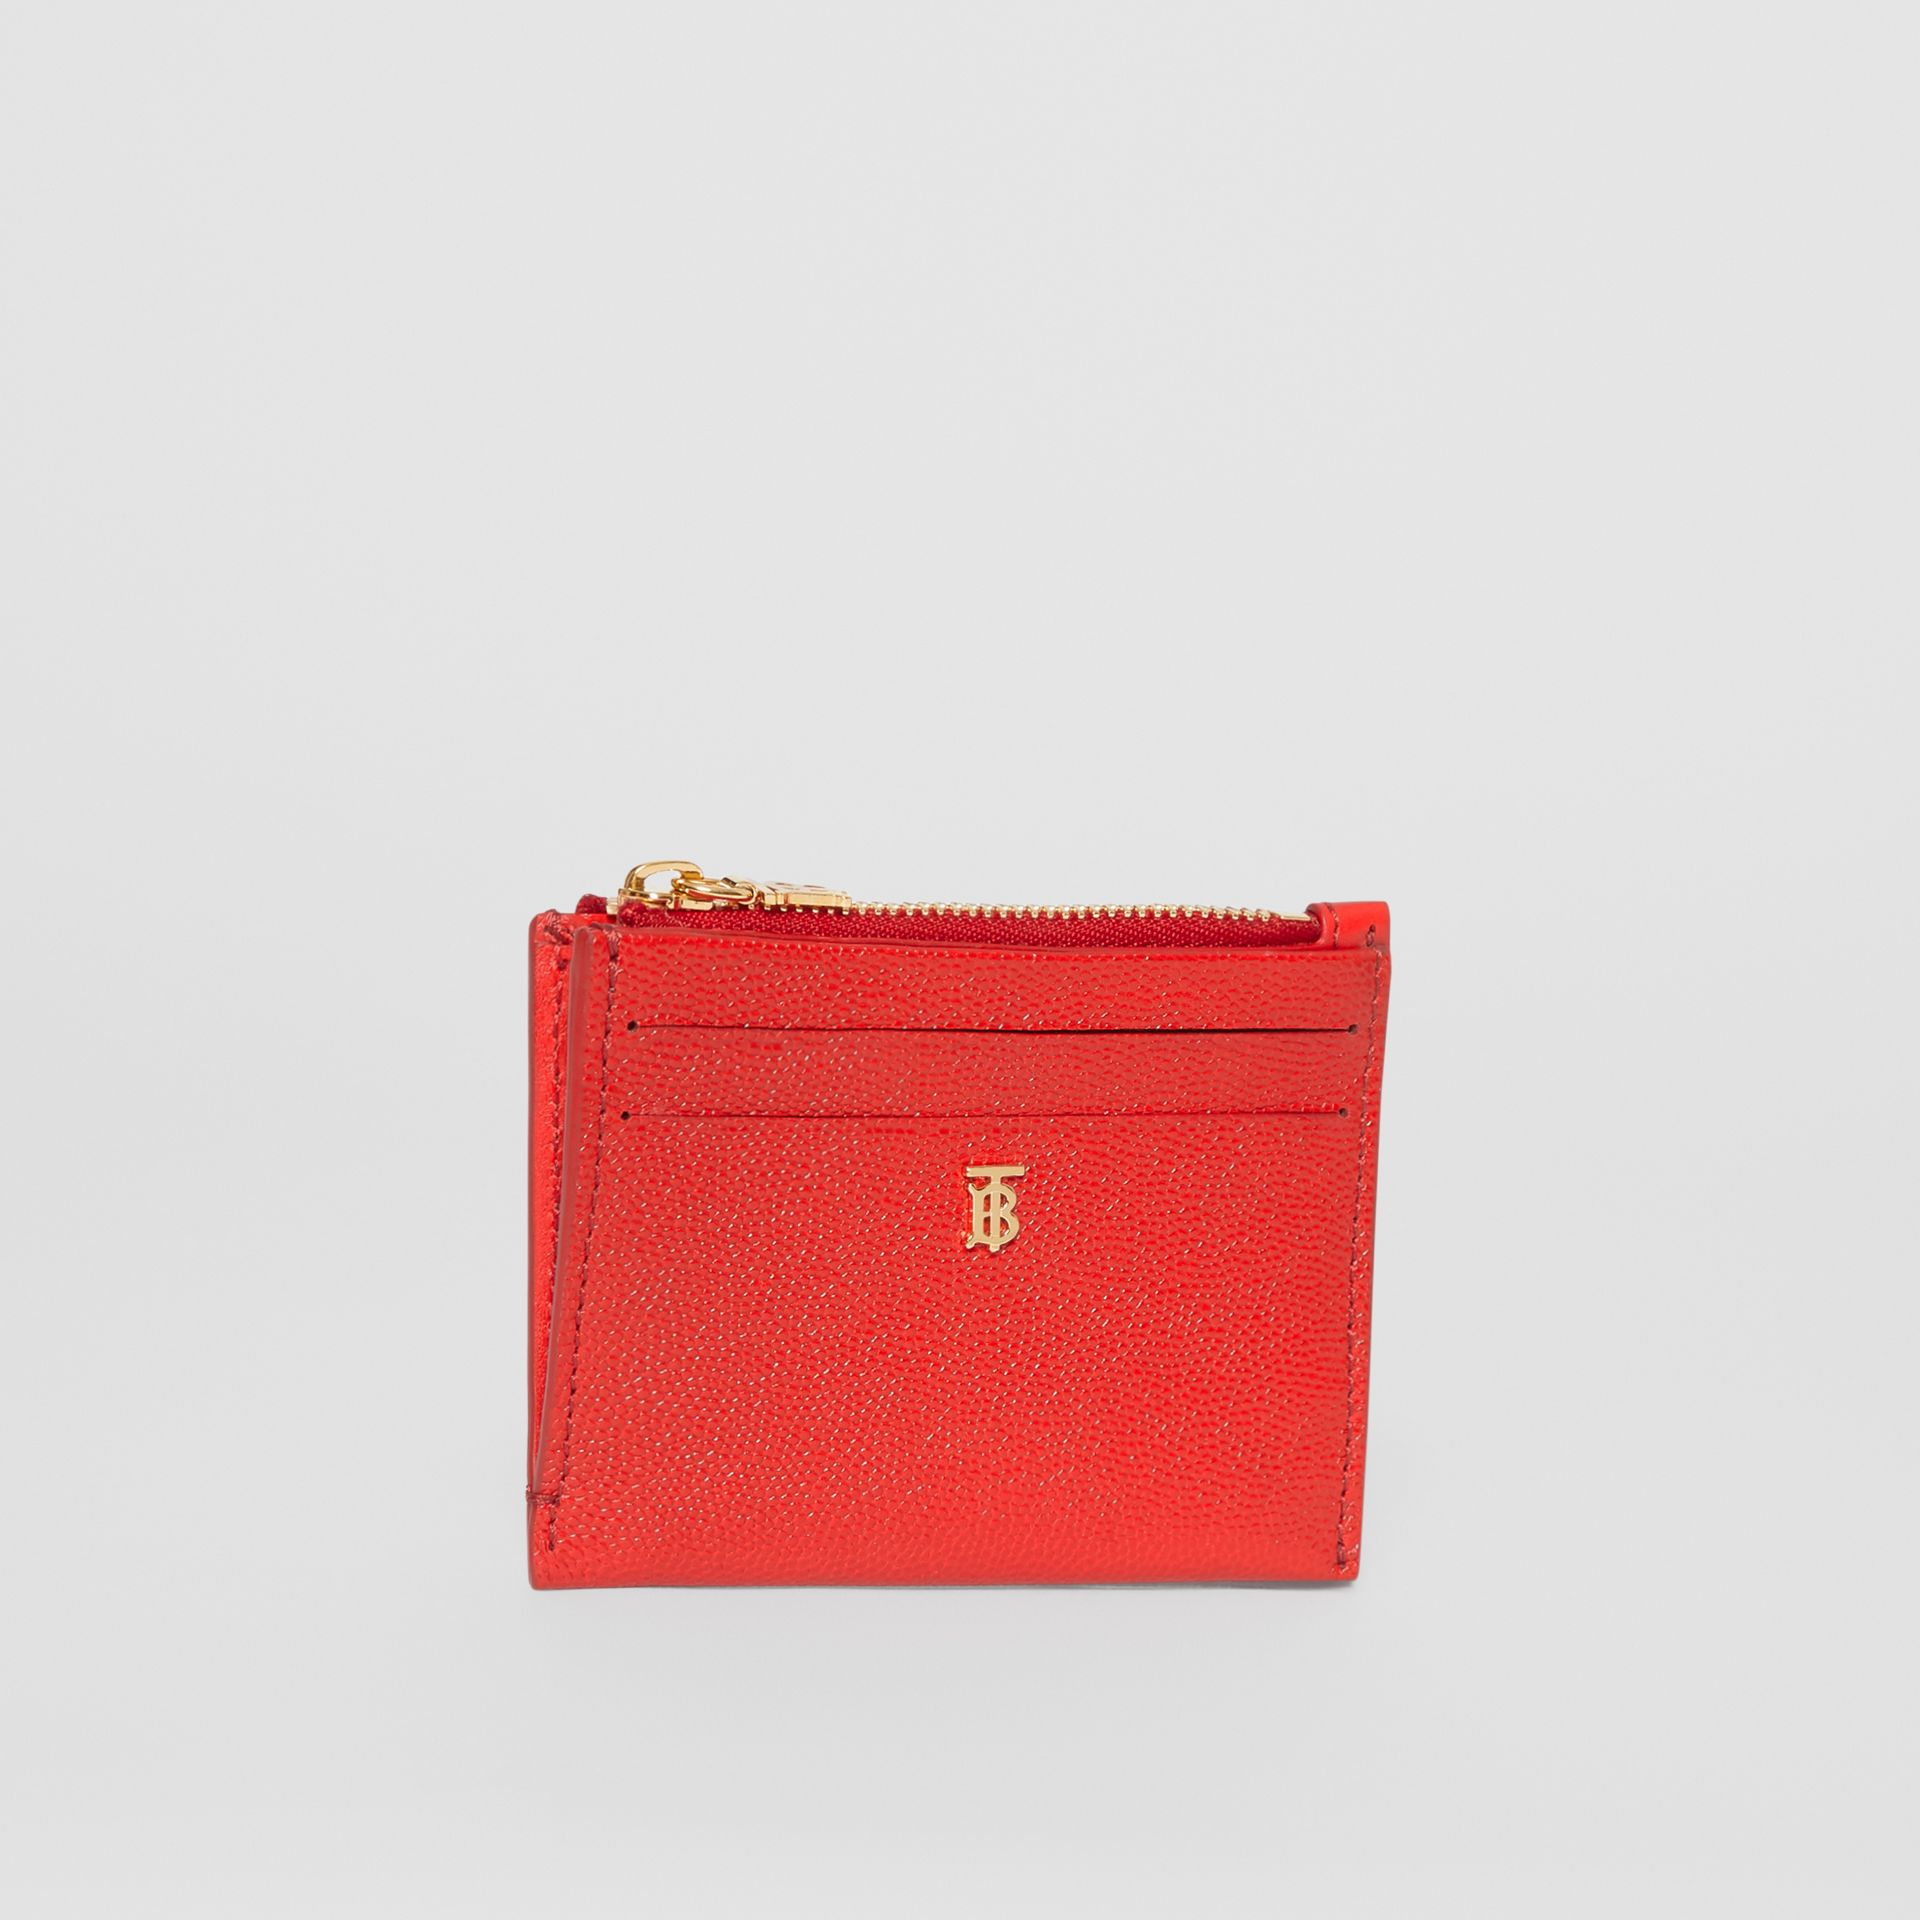 Monogram Motif Grainy Leather Zip Card Case in Bright Red - Women | Burberry - gallery image 3